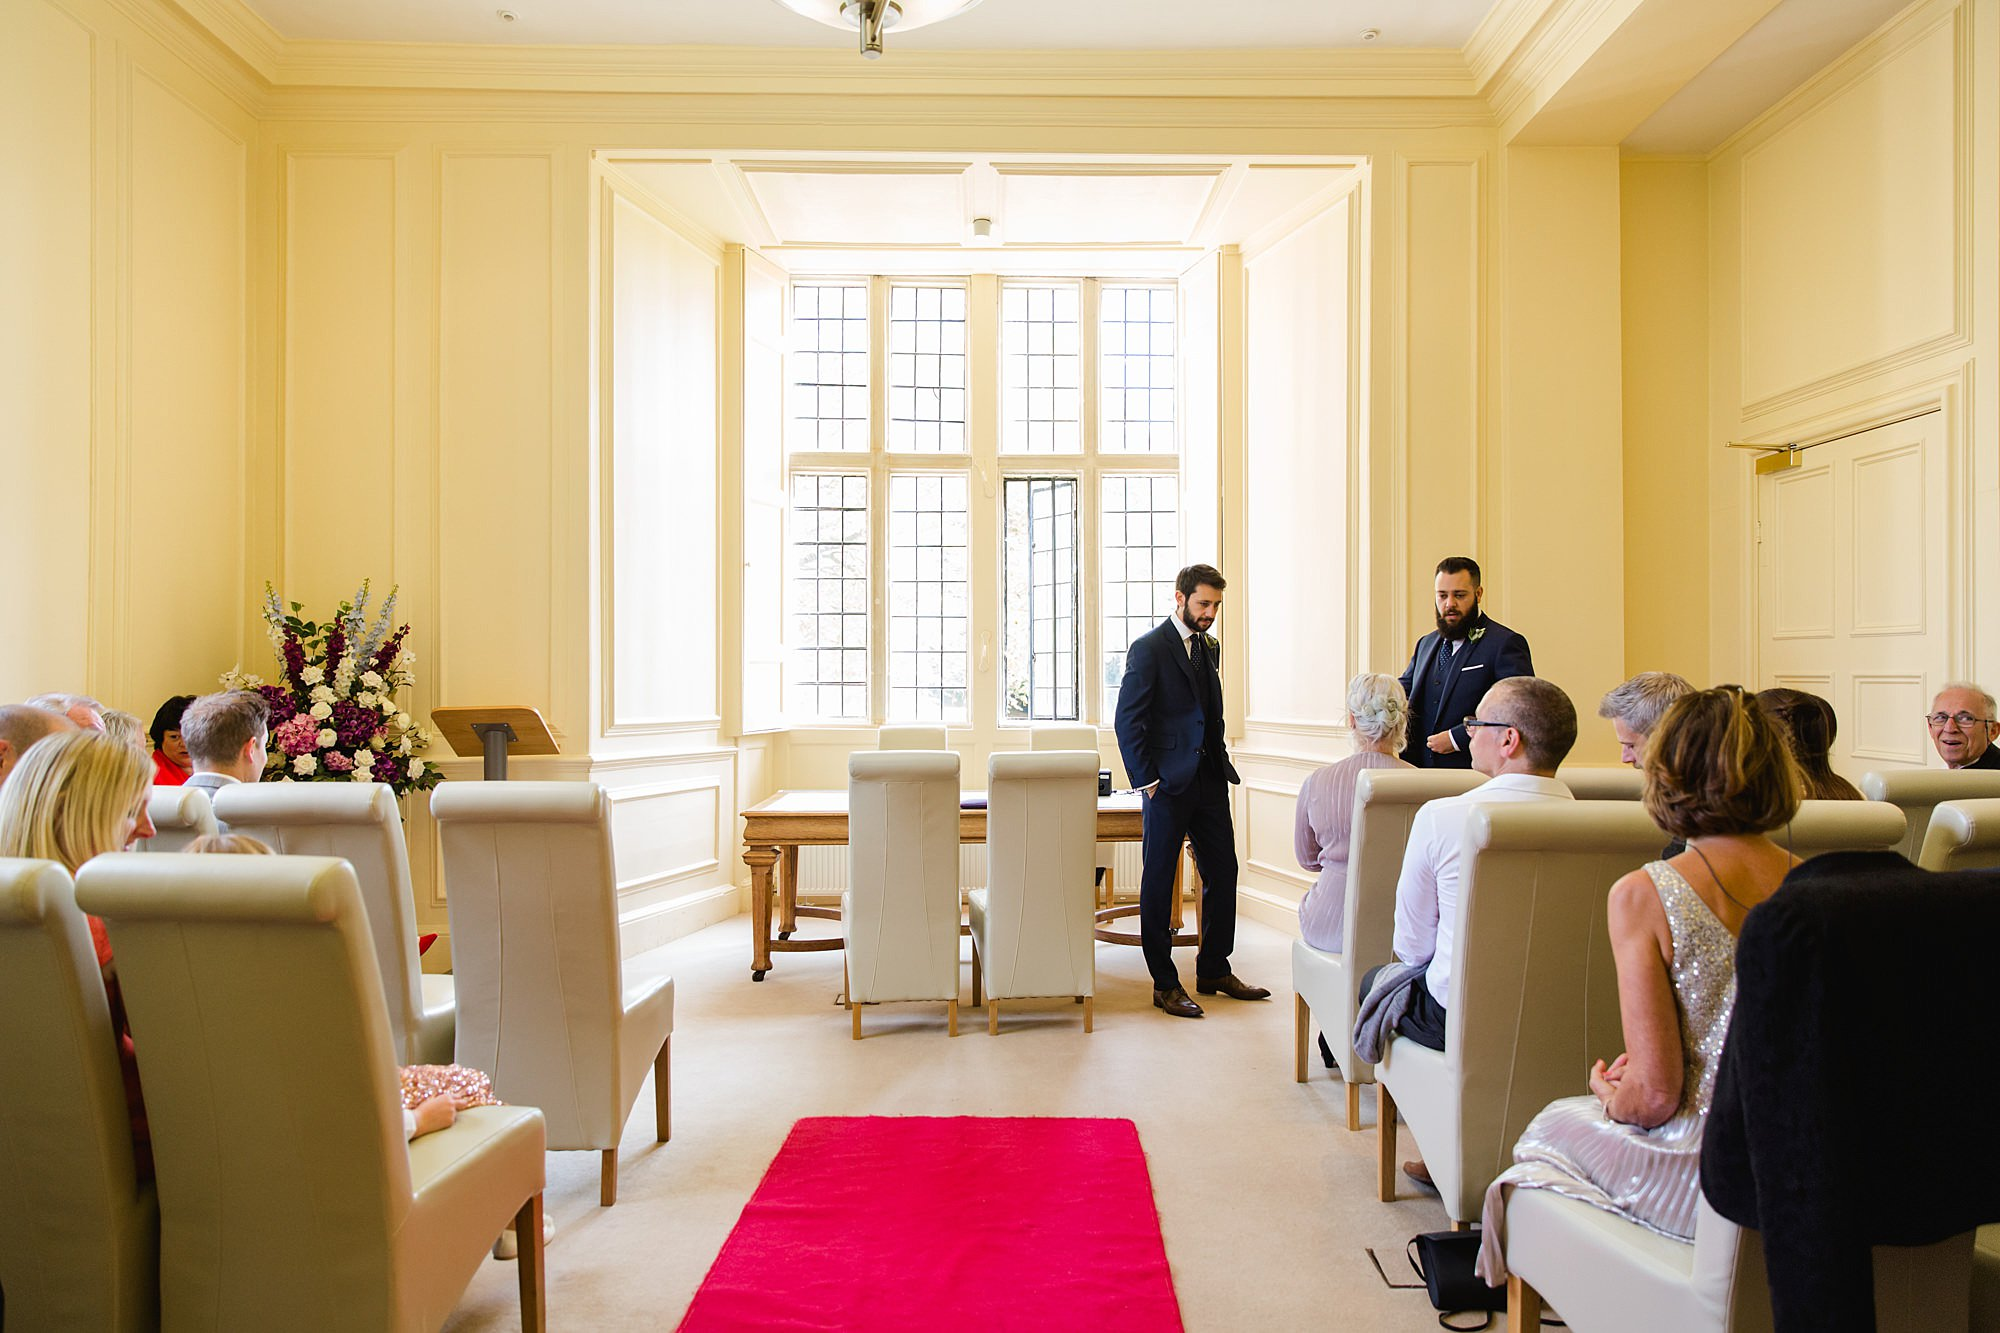 shaw house wedding groom waiting in ceremony room